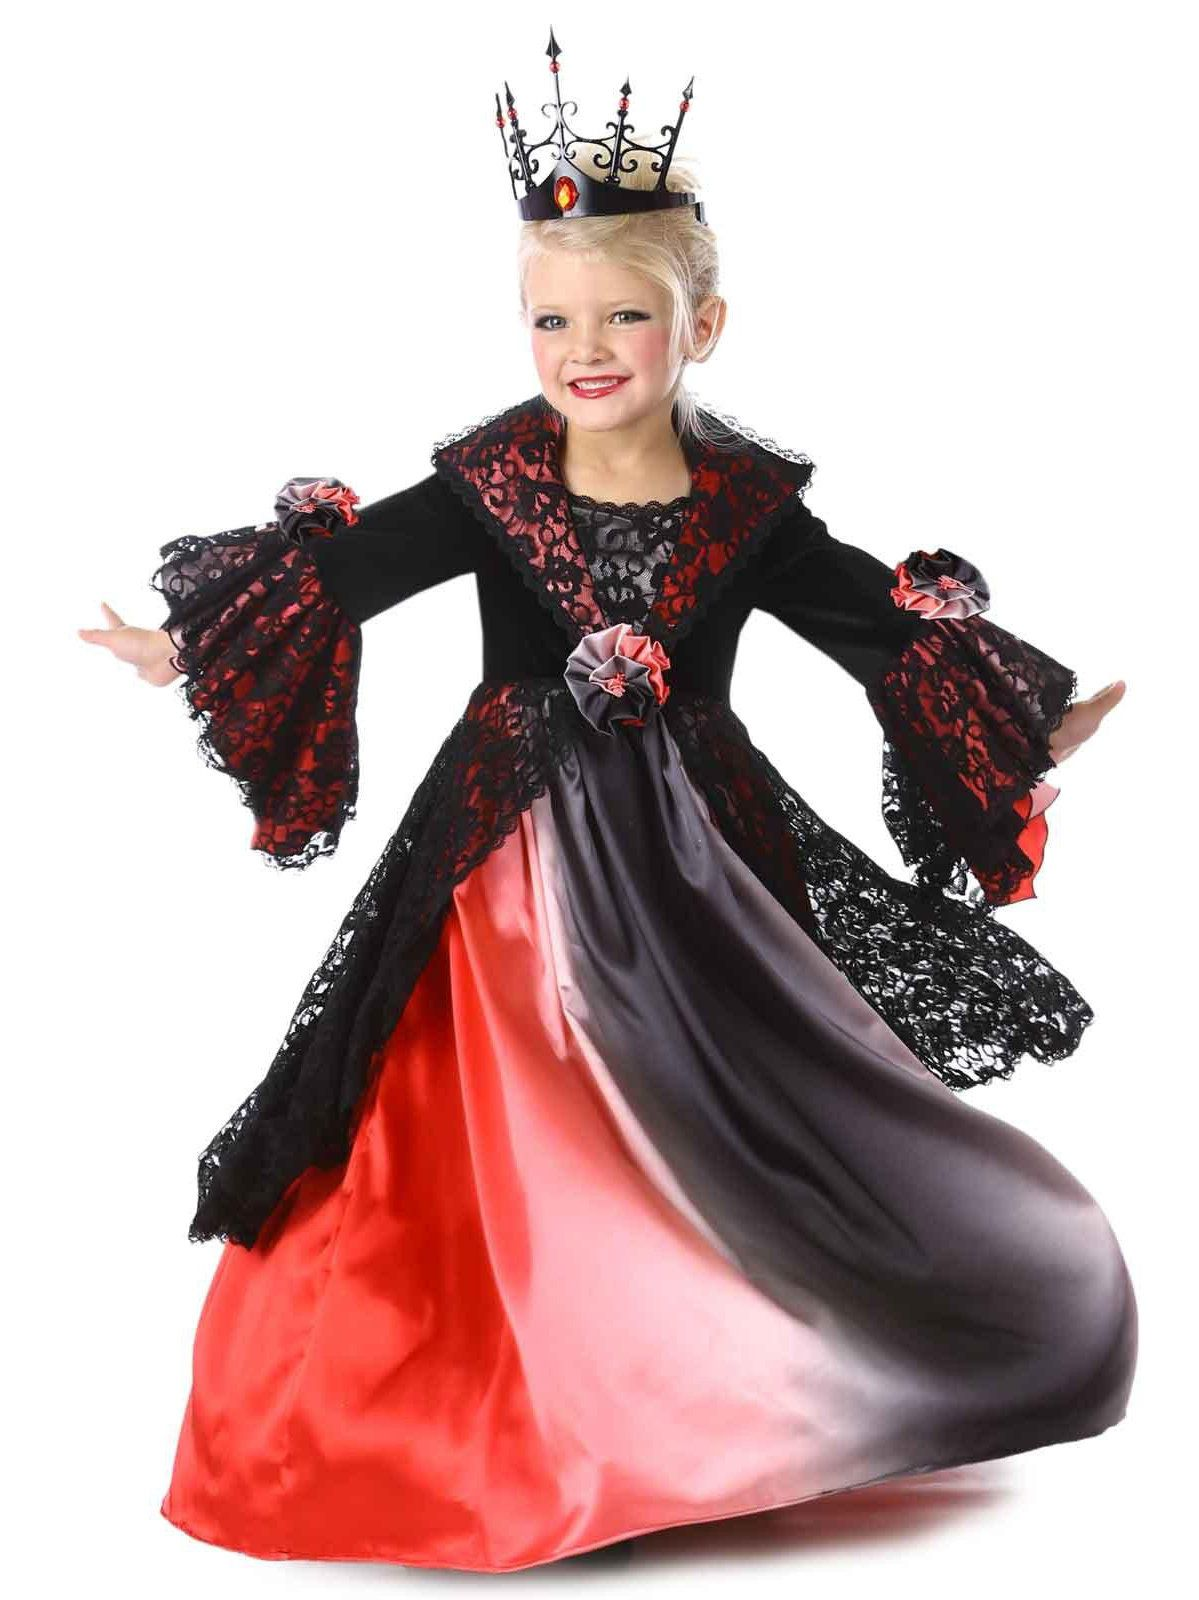 Halloween Vampire Costume Kids.Ombre Vampire Costume For Children Girls Costumes For 2018